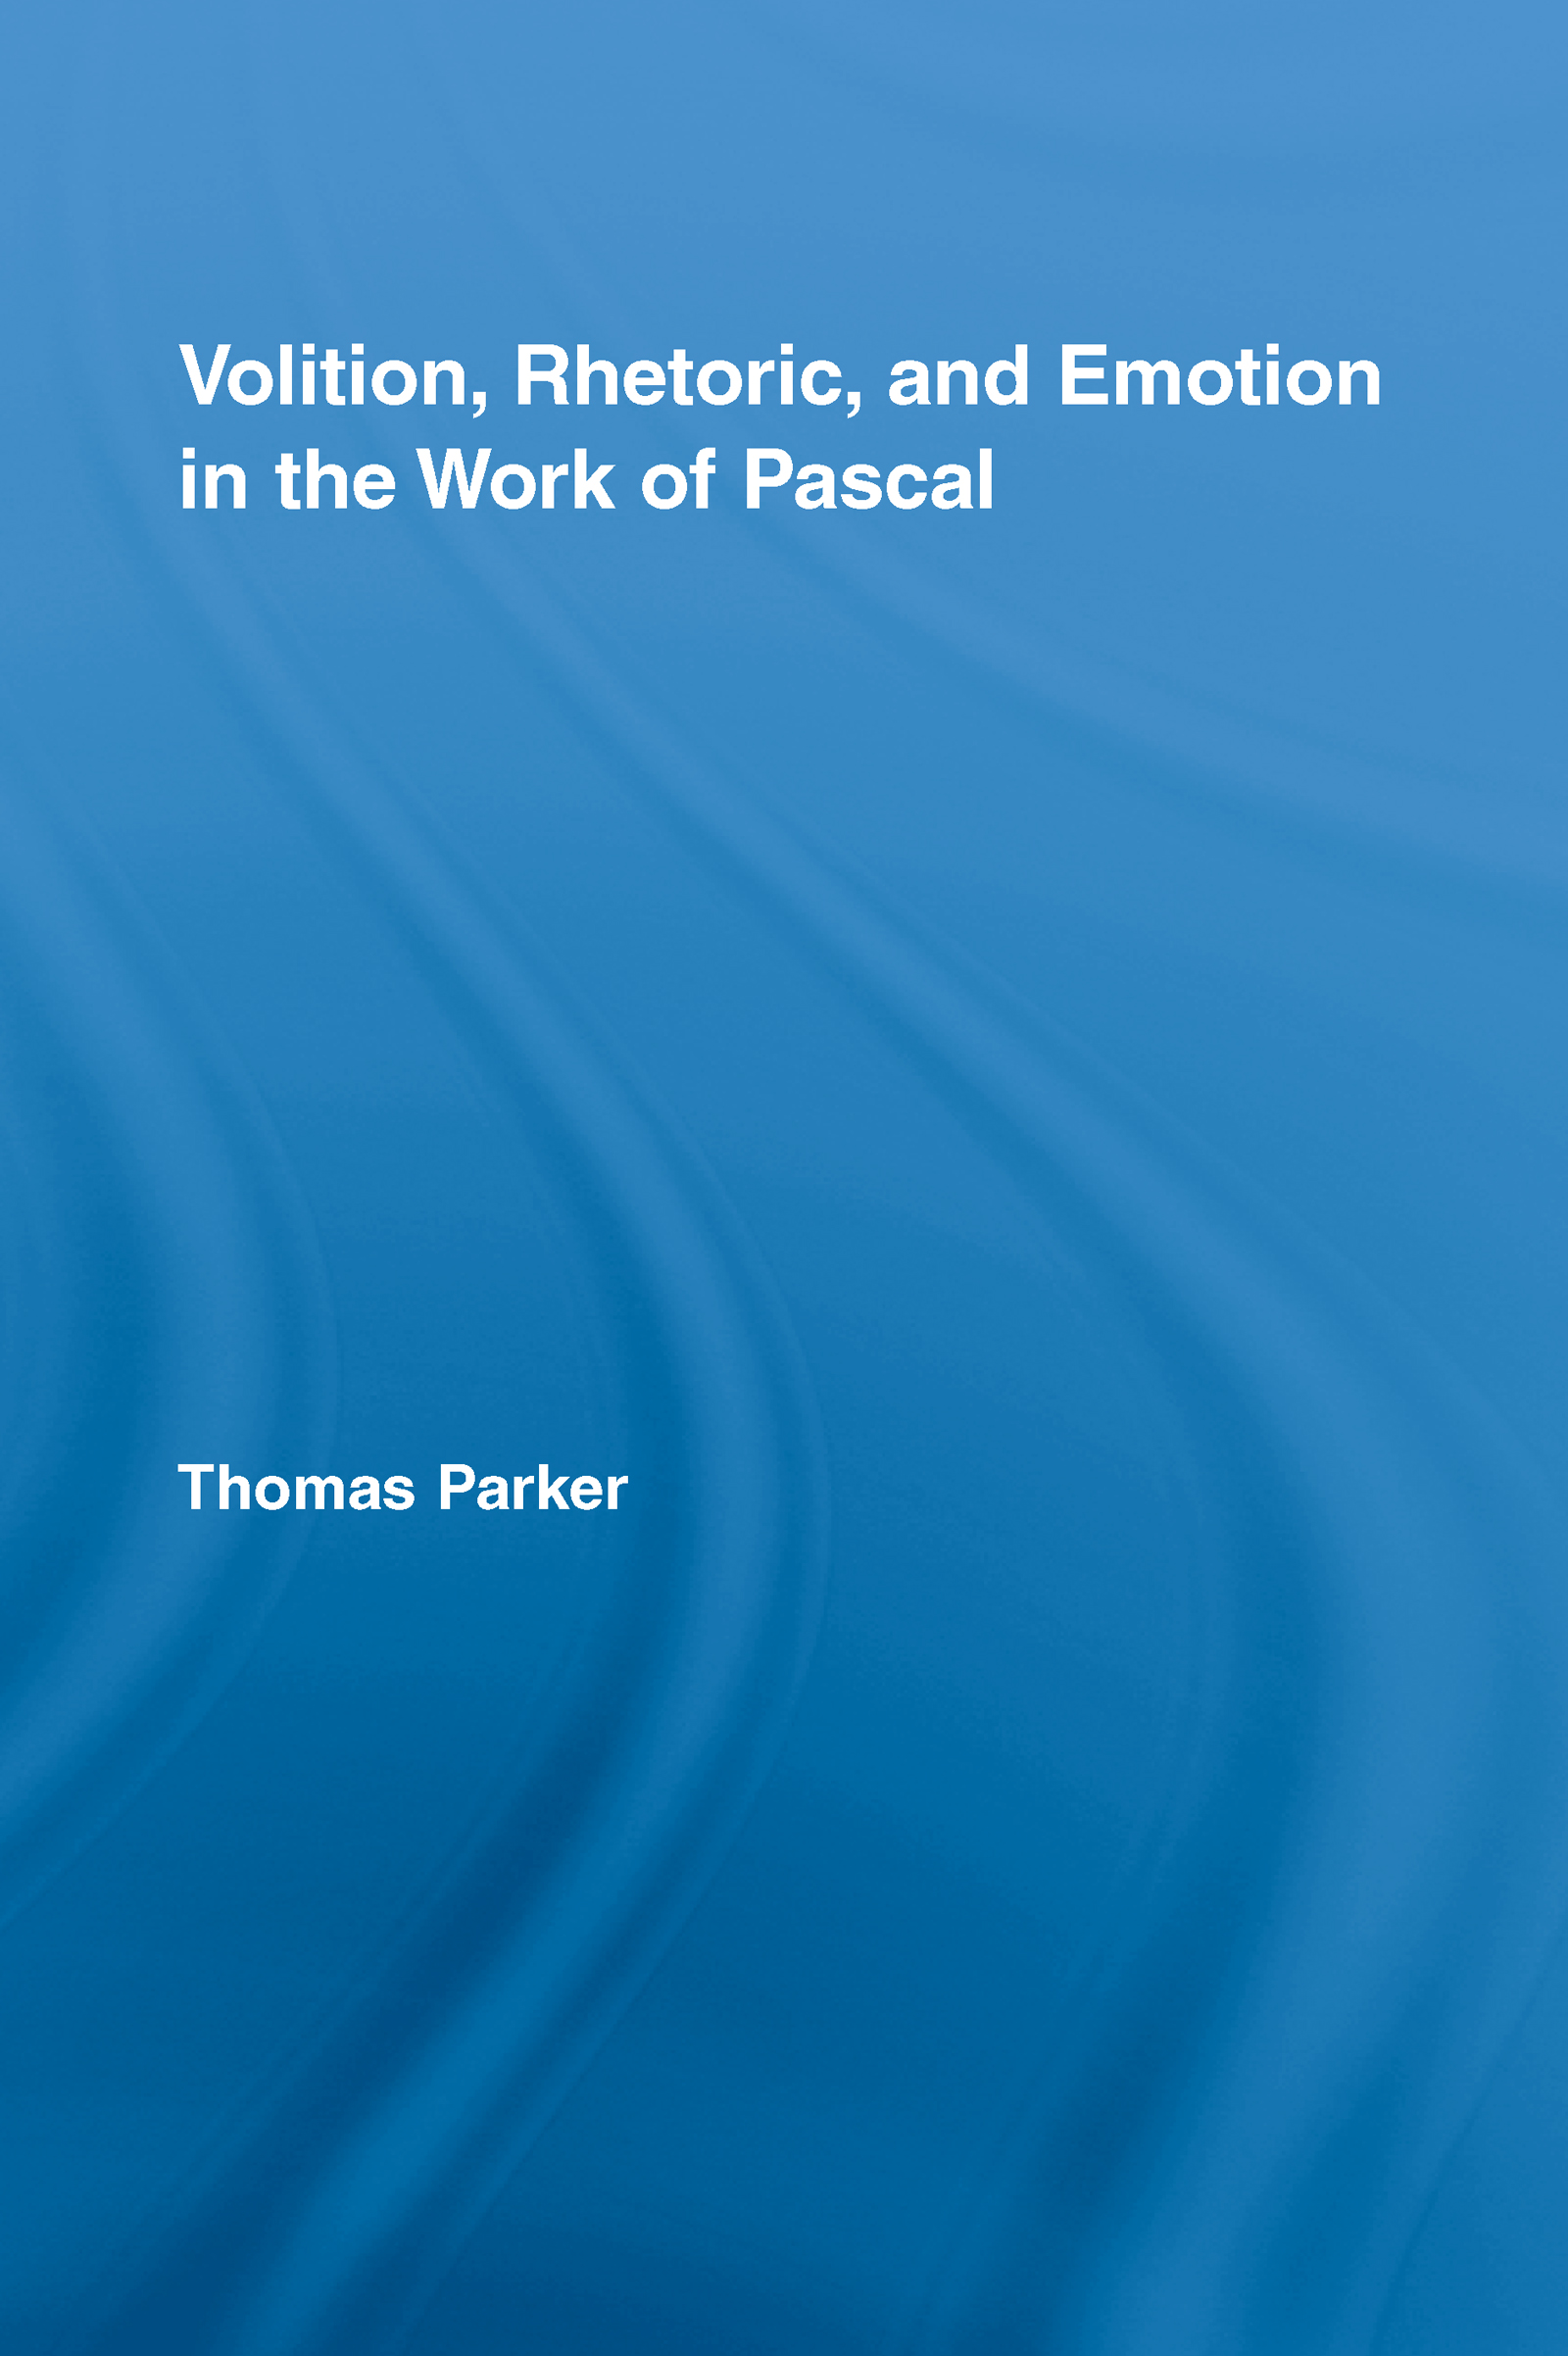 Volition, Rhetoric, and Emotion in the Work of Pascal book cover